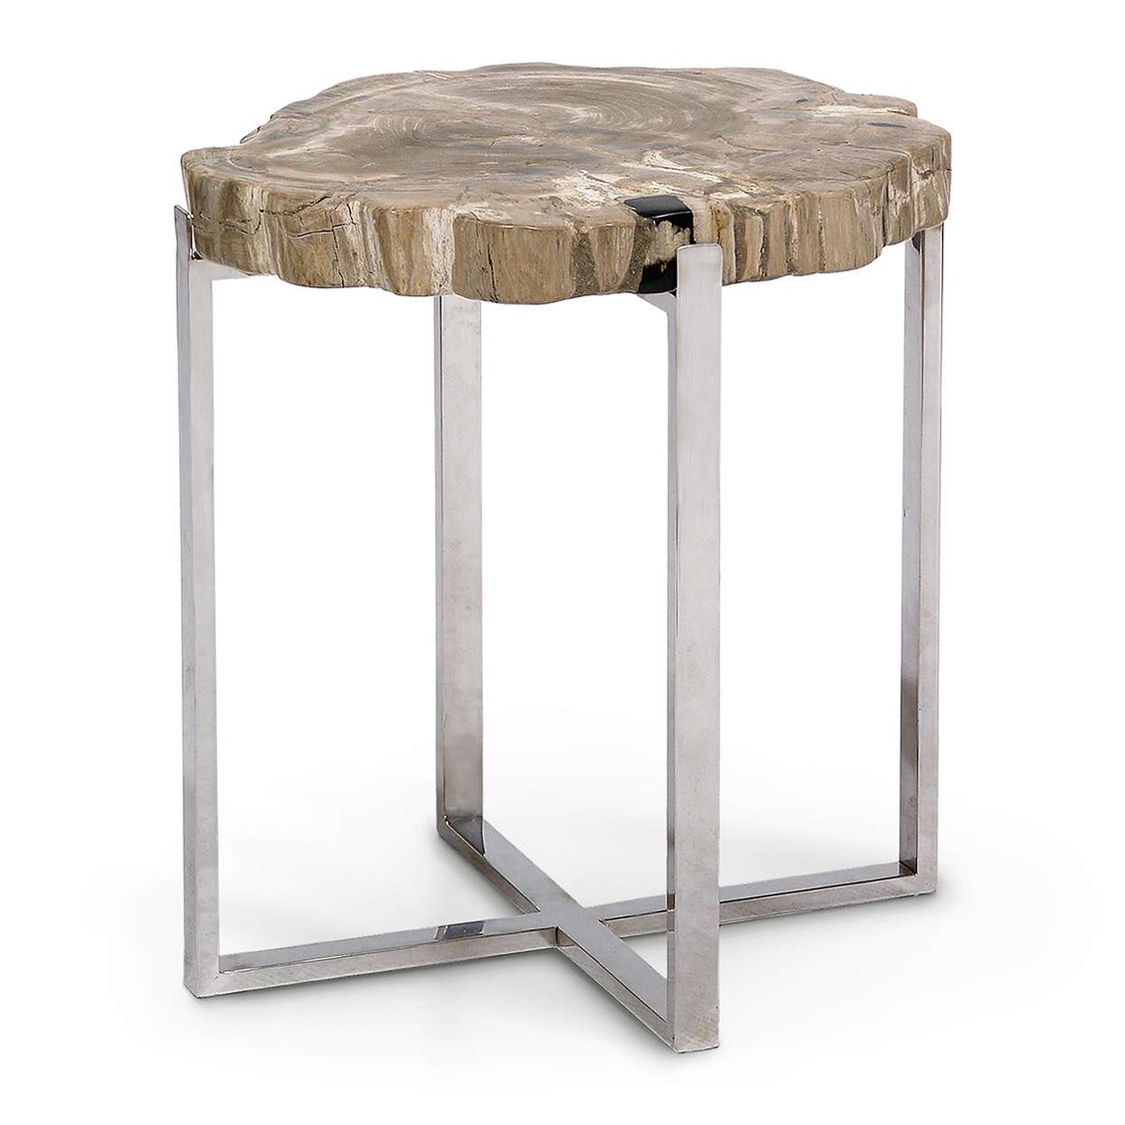 excellent wood accent table round tripod mango white below oval burkhardt square reclaimed carved target tribal tables and natural five wooden metal small solid bold unfinished